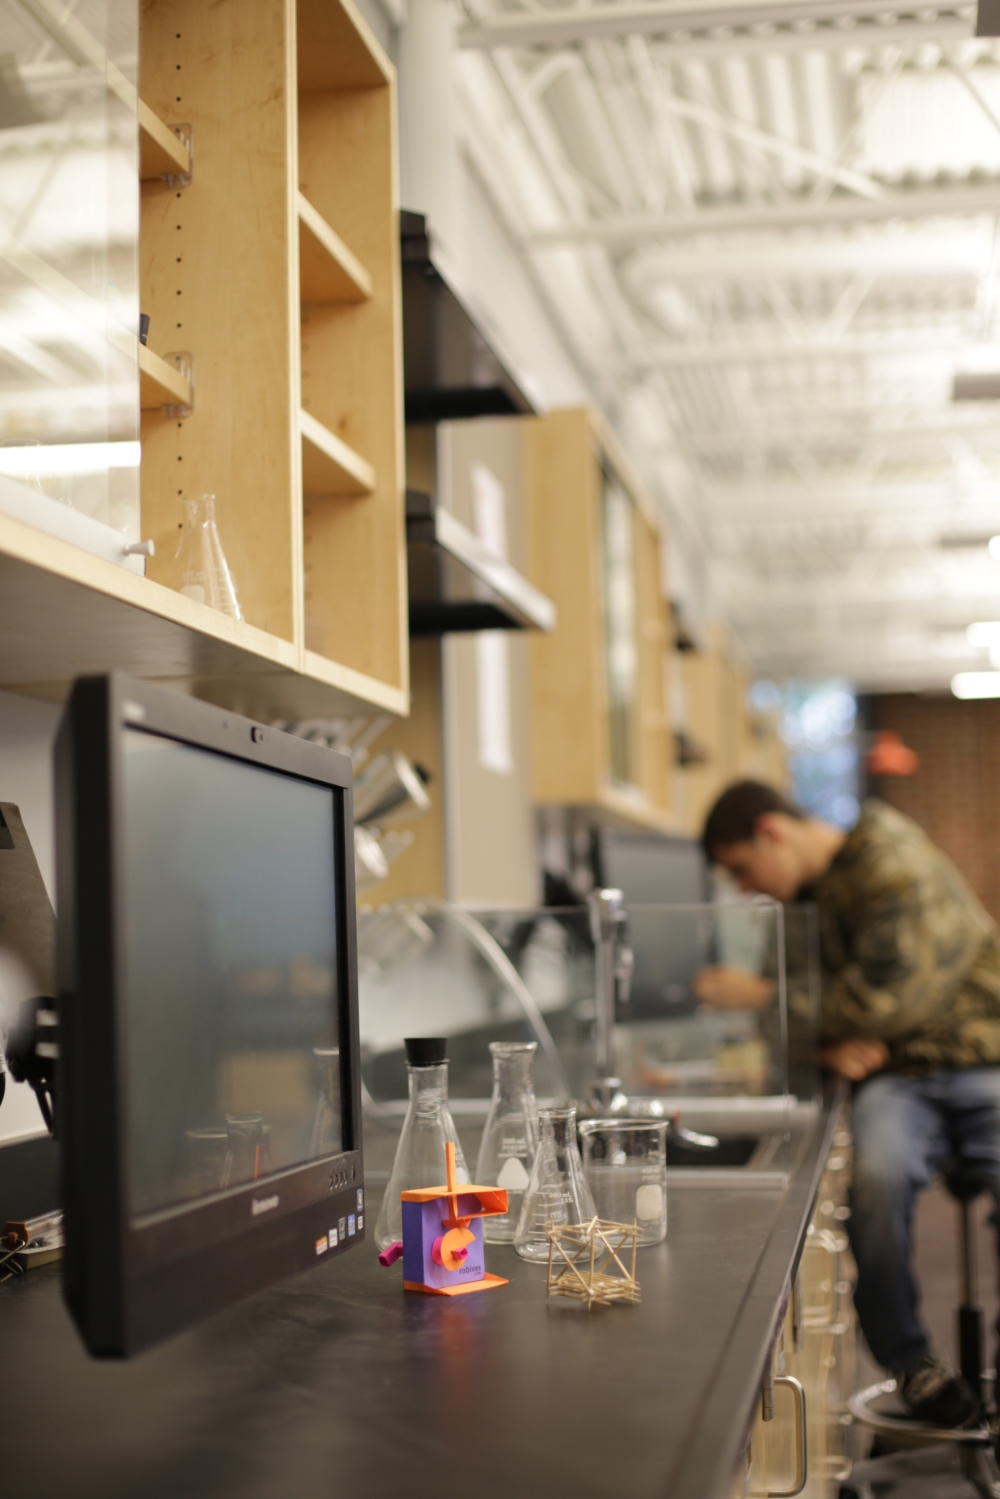 Each lab station features a die-cutter, a 3D printer with direct exhaust, and an arm-mounted video monitor.